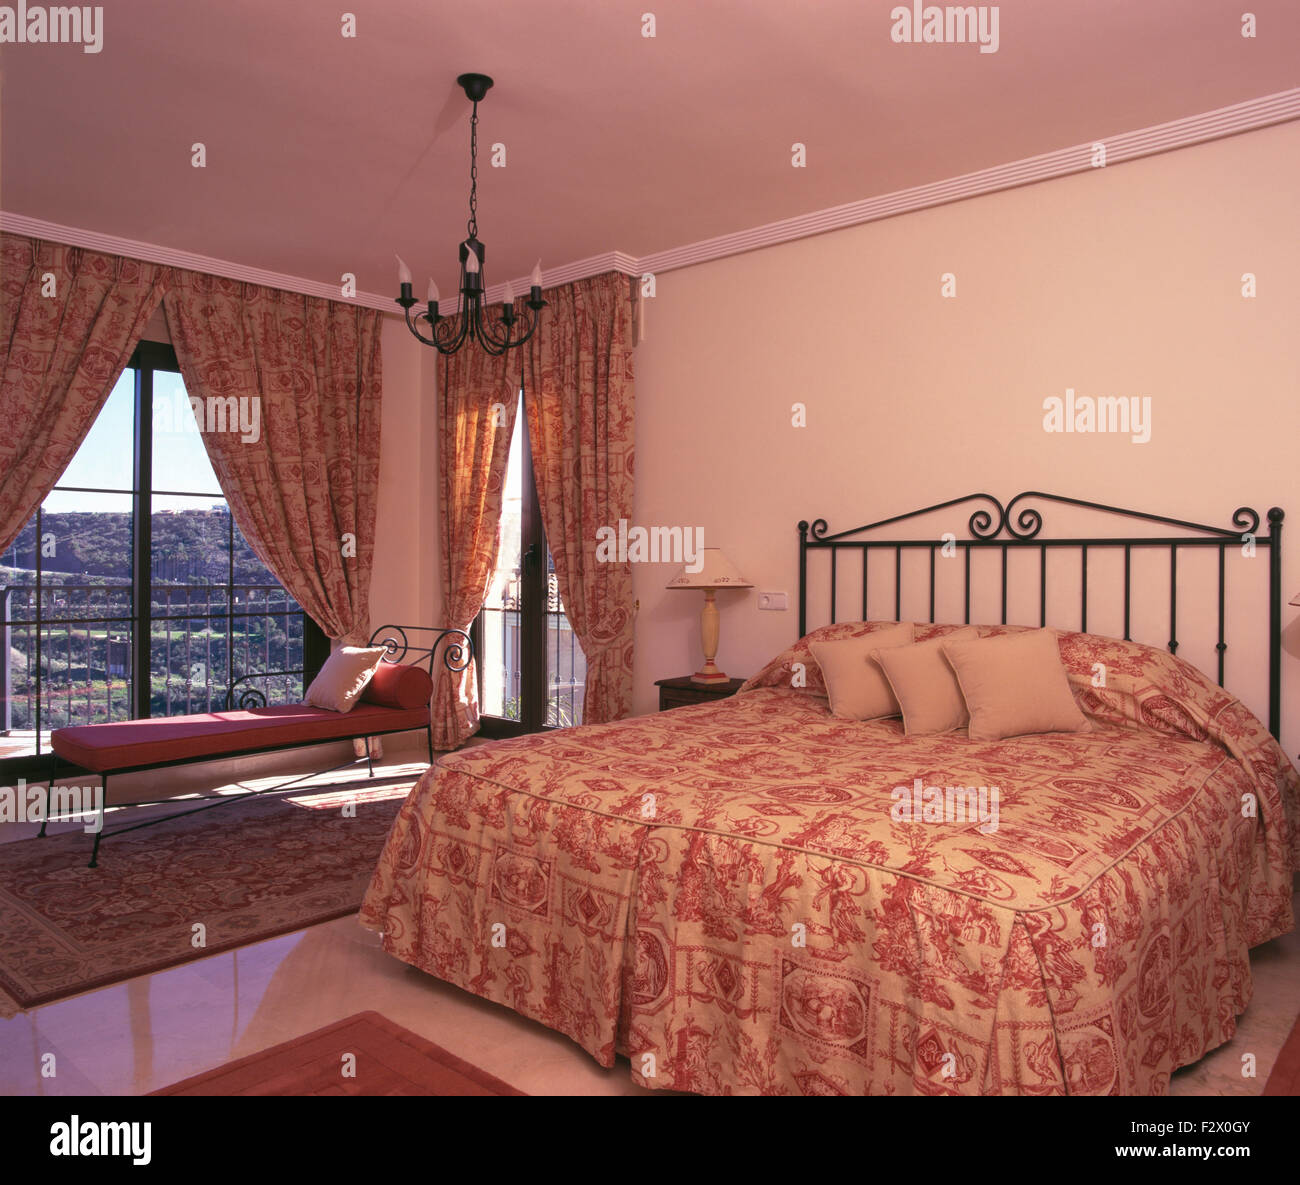 Pink patterned quilt on metal bed in Spanish bedroom with co-ordinating curtains on glass doors to balcony - Stock Image